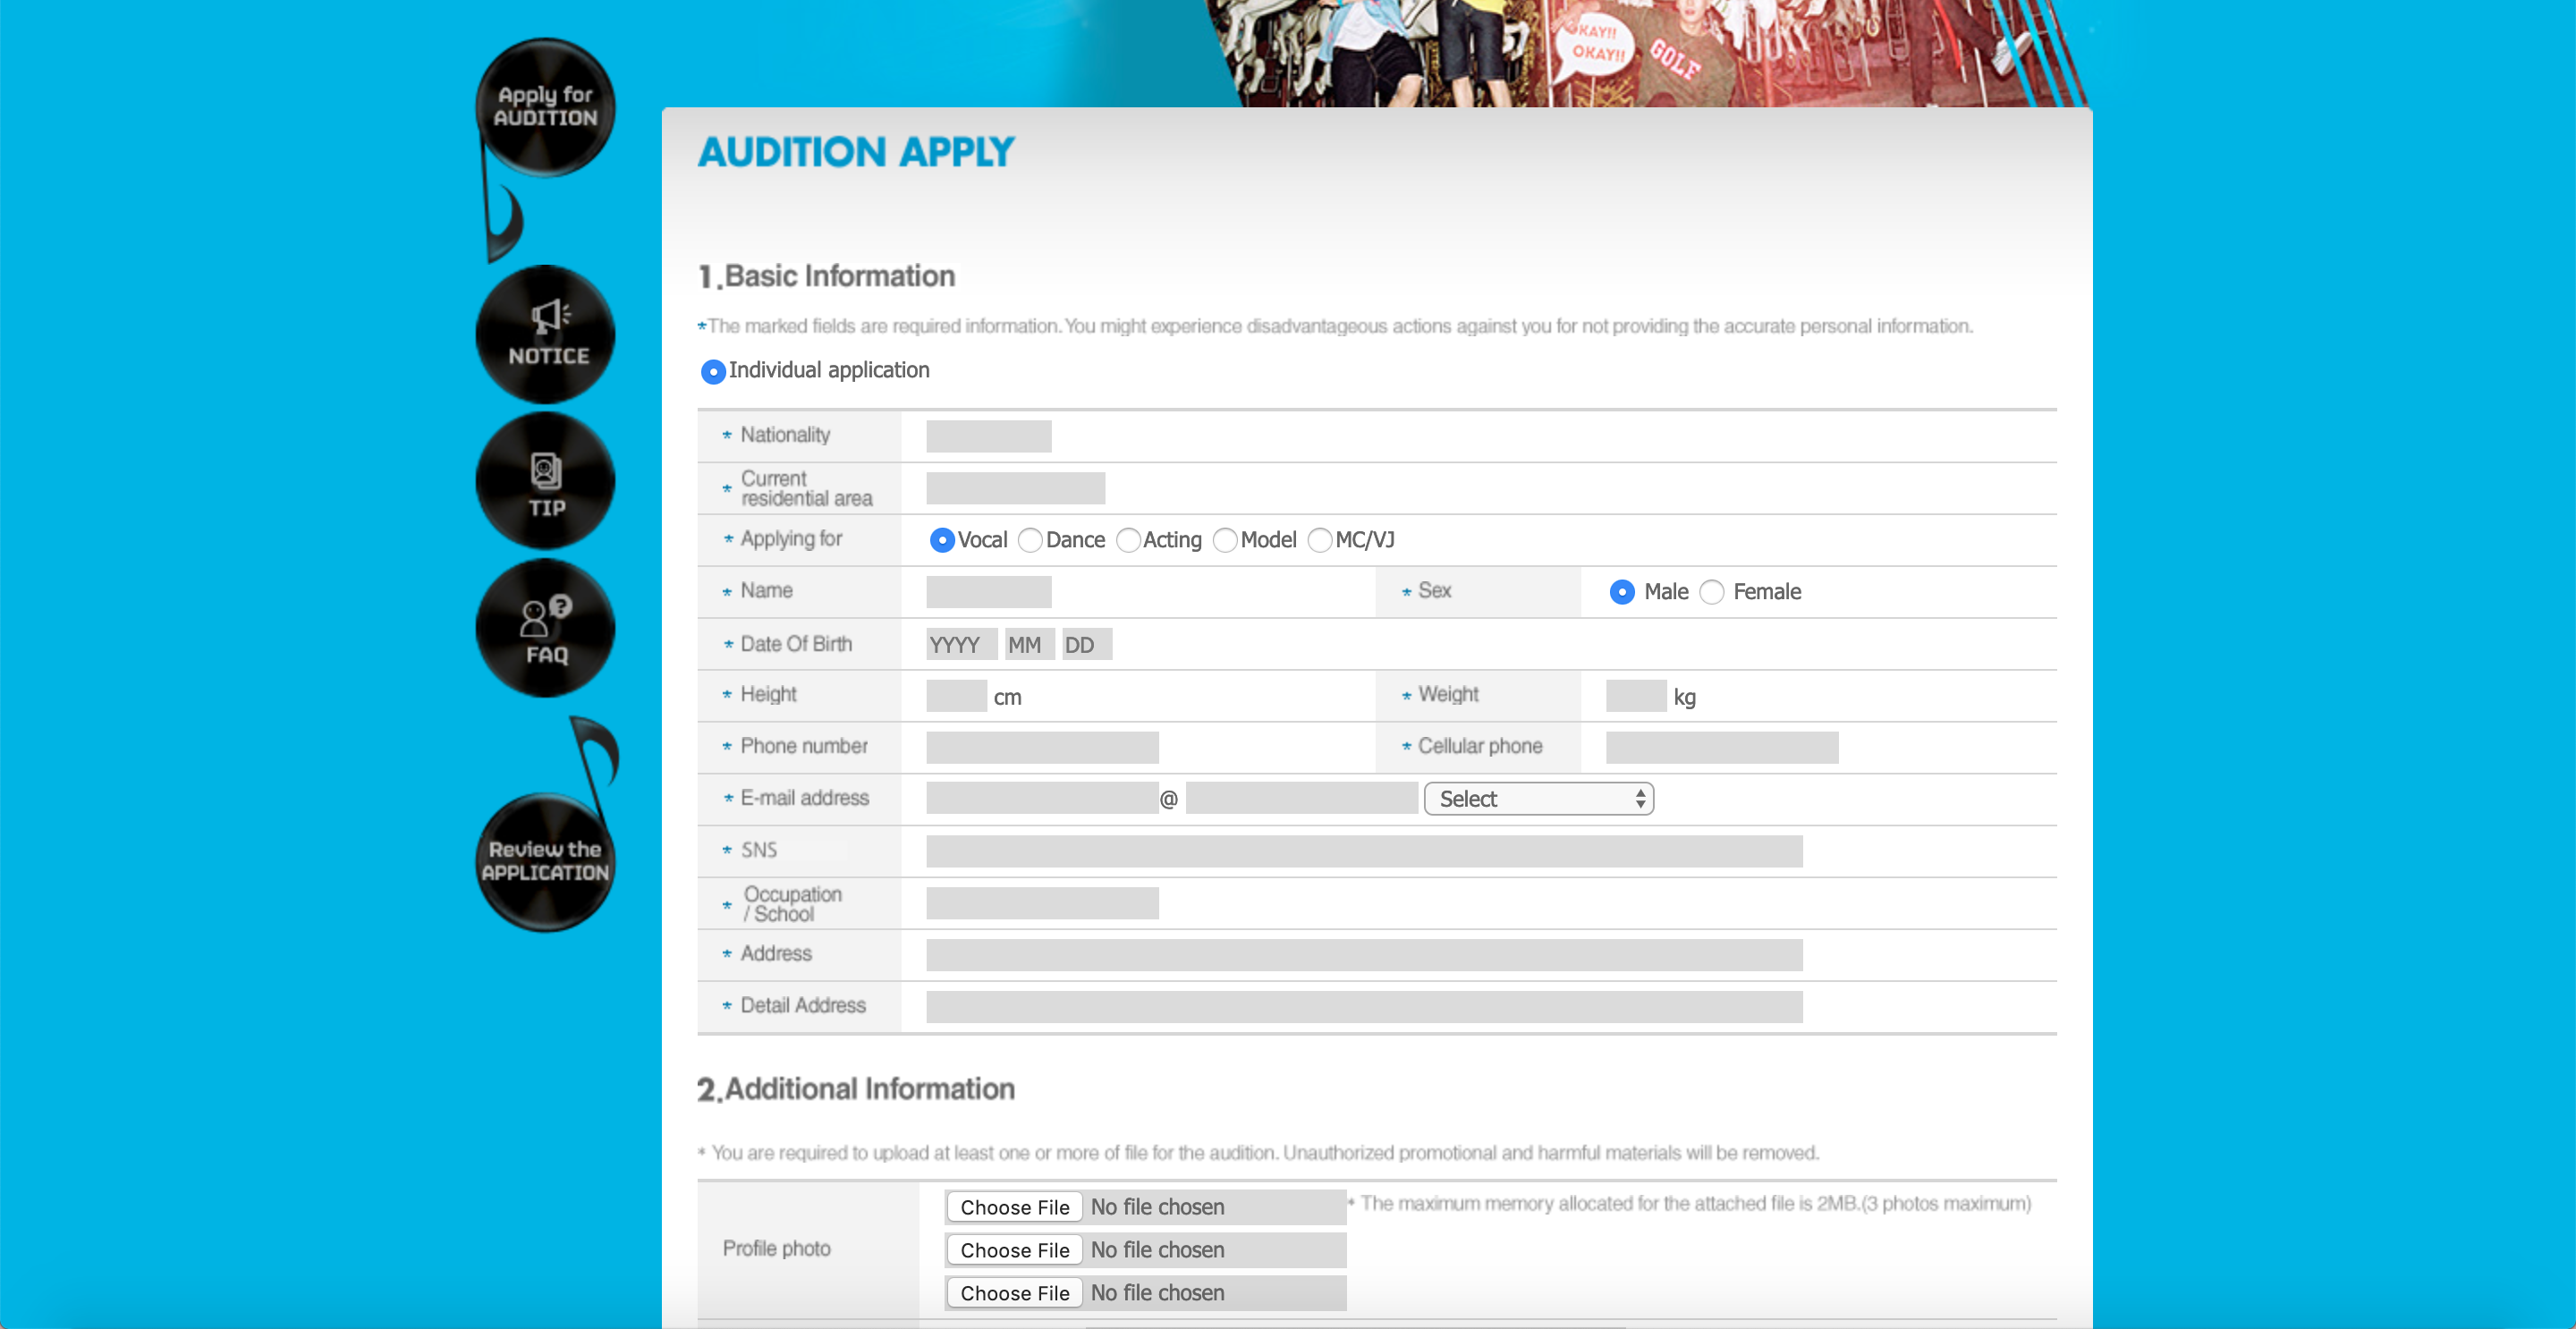 How to join the JYPE online audition? Is there an application form